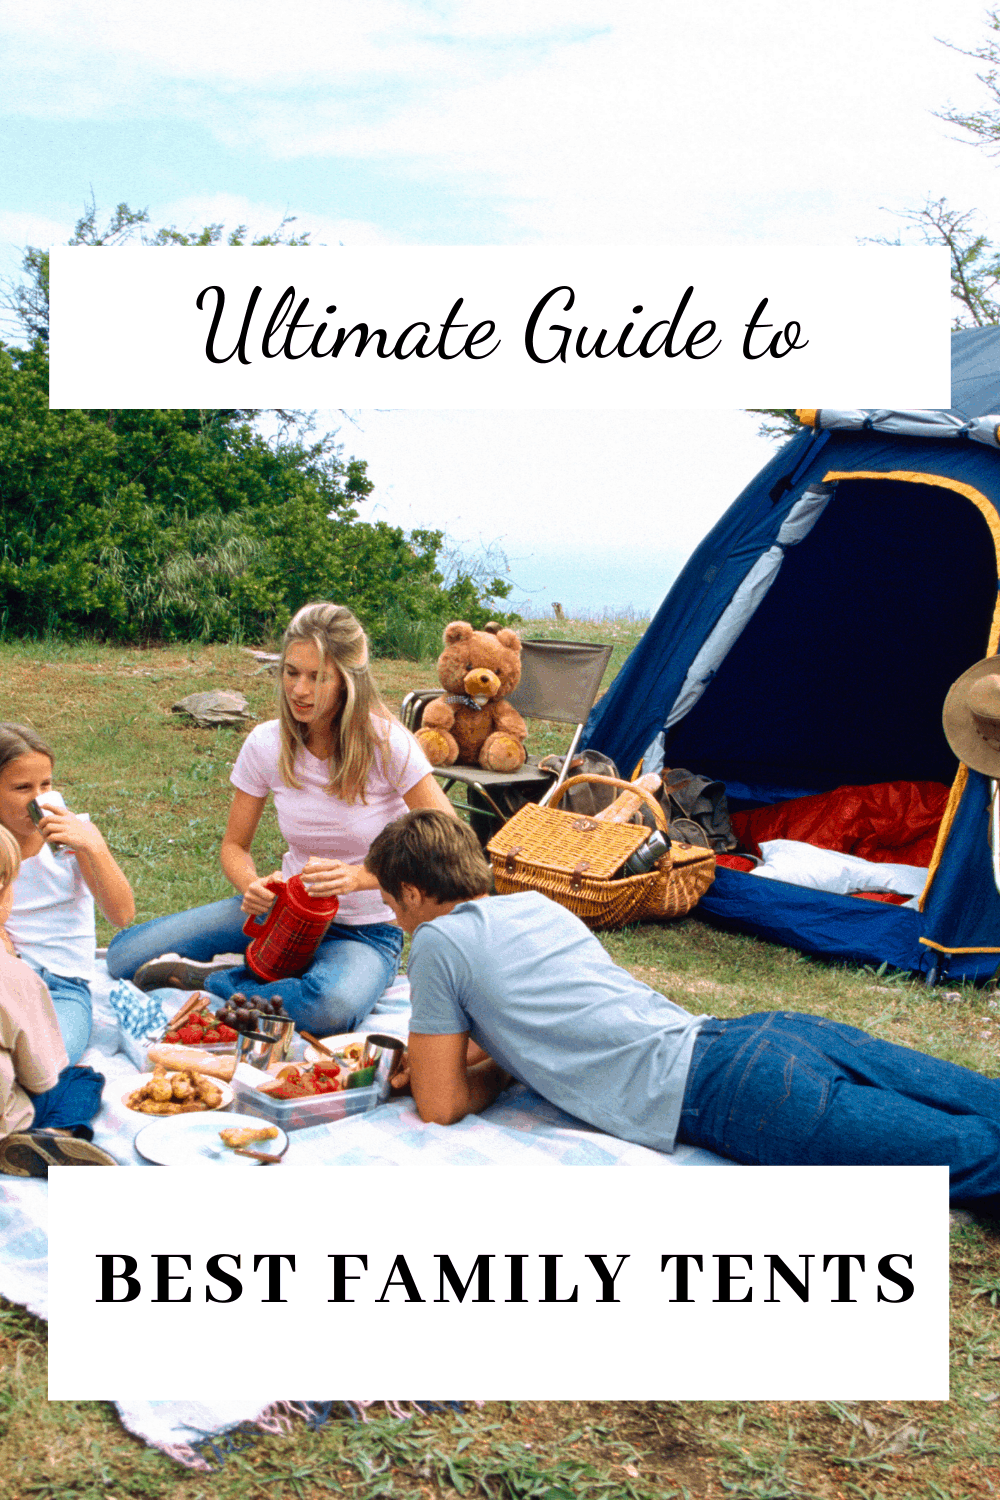 Its never to early to start camping with your family.  Check out our review and buyers guide of the best family tents for your camping adventure